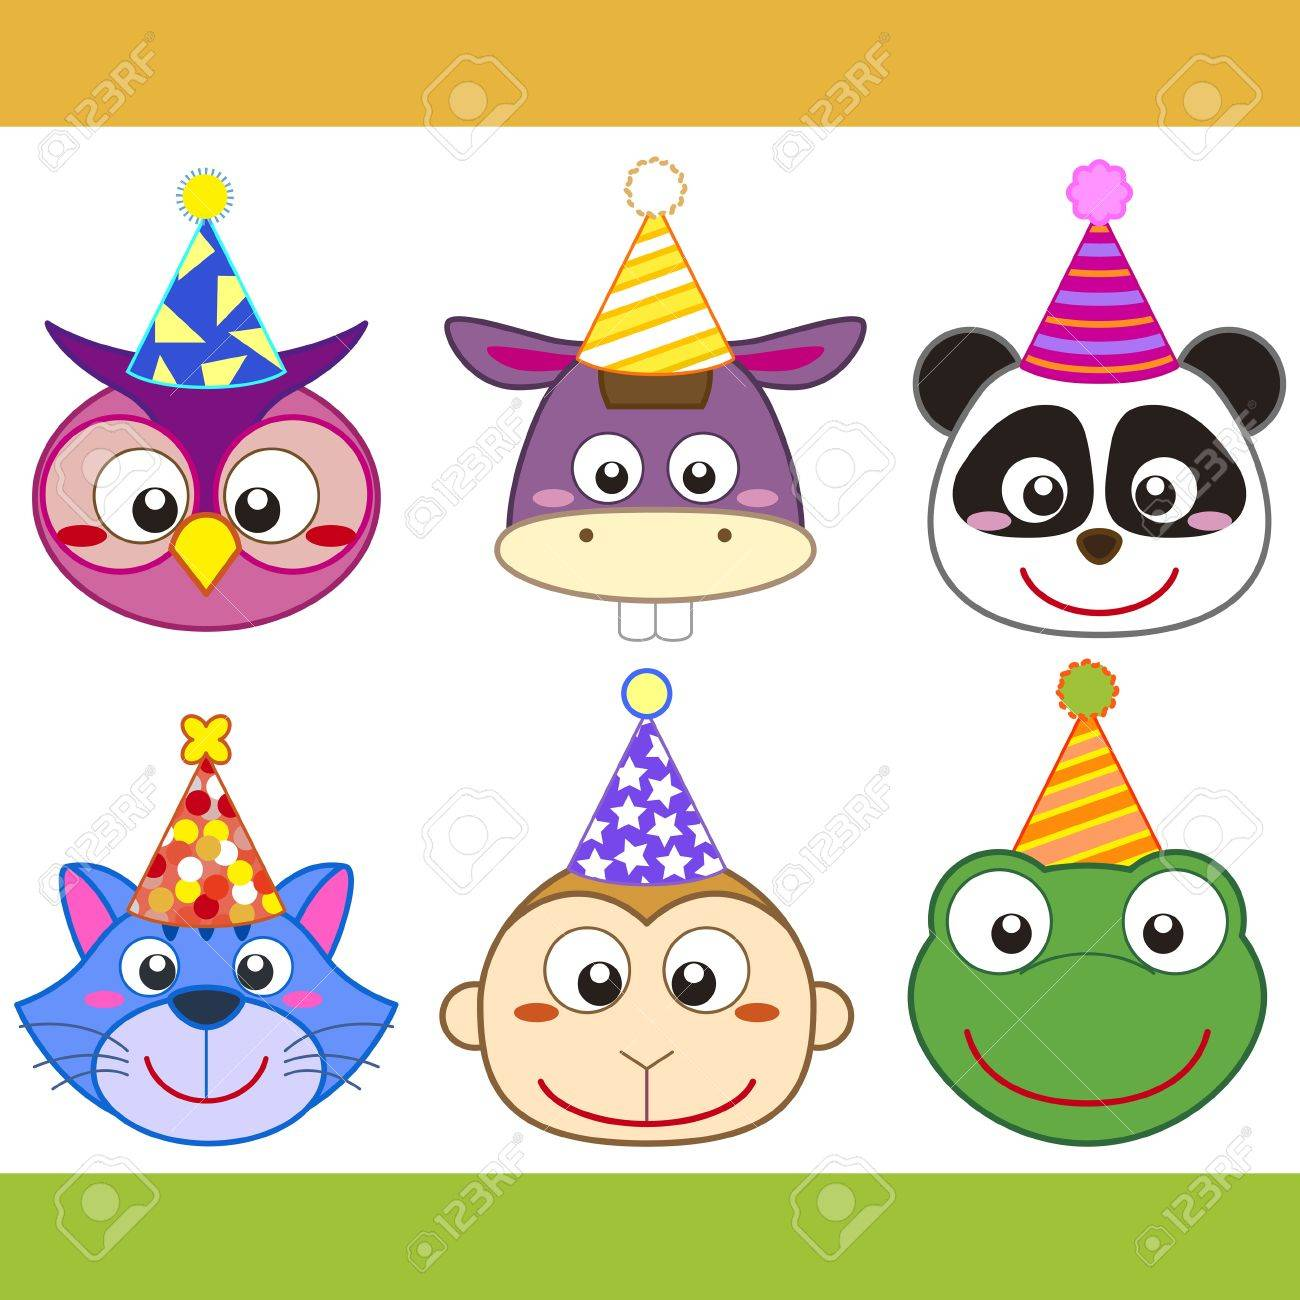 cartoon party animal icons collection. Stock Vector - 20335638